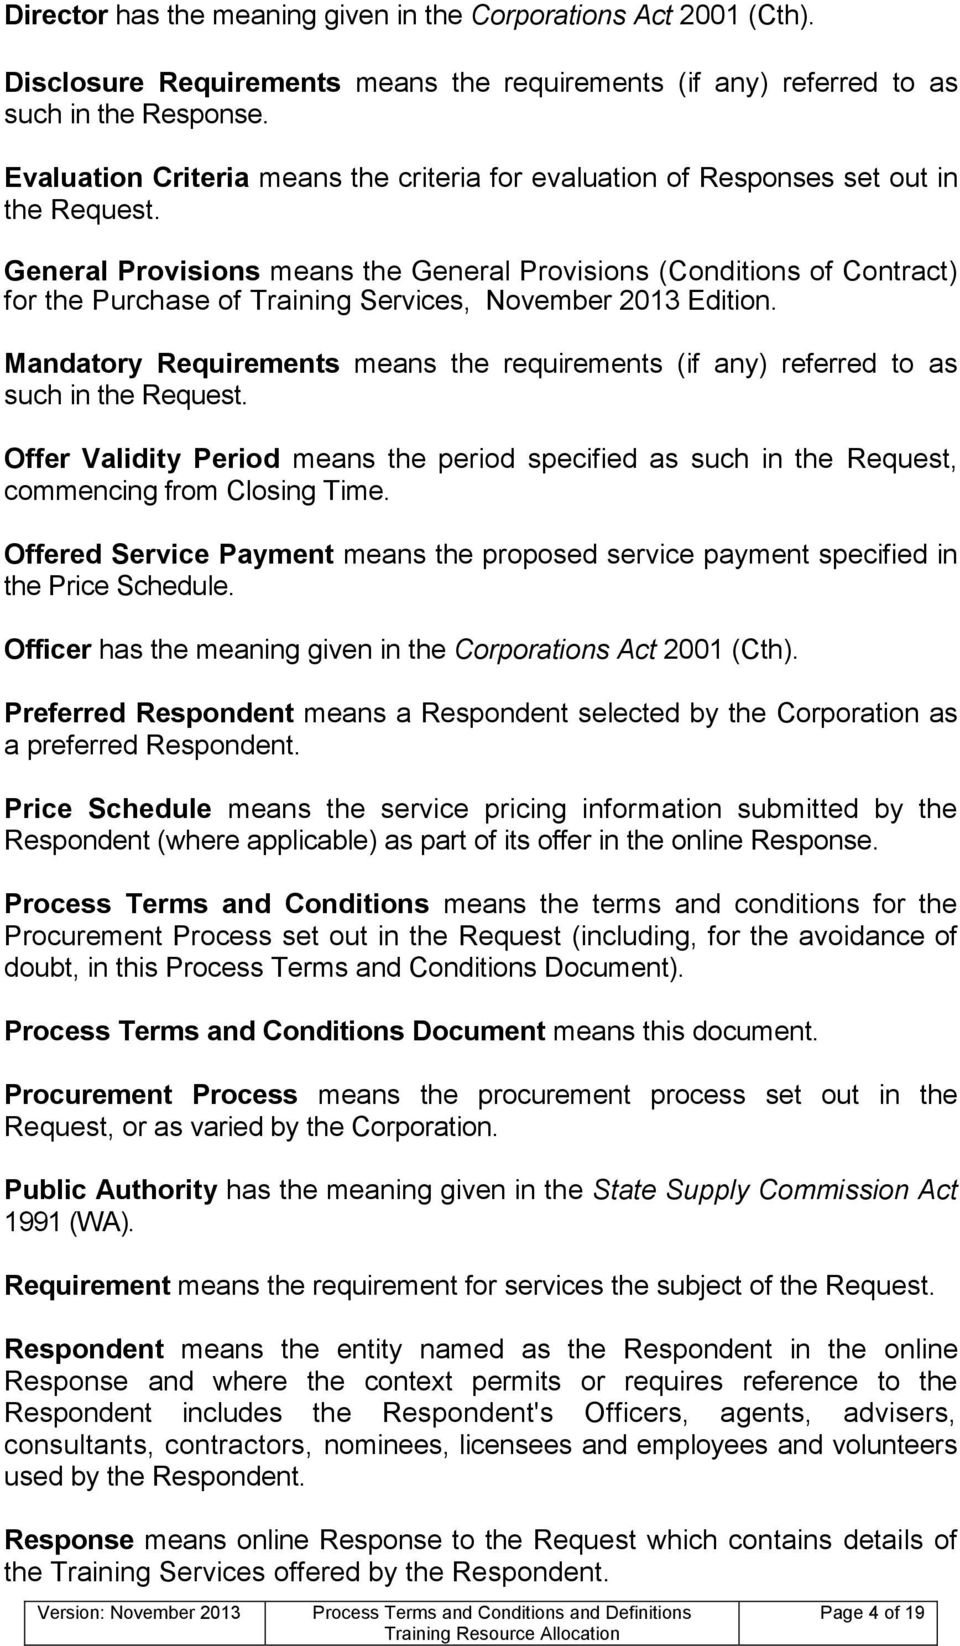 General Provisions means the General Provisions (Conditions of Contract) for the Purchase of Training Services, November 2013 Edition.